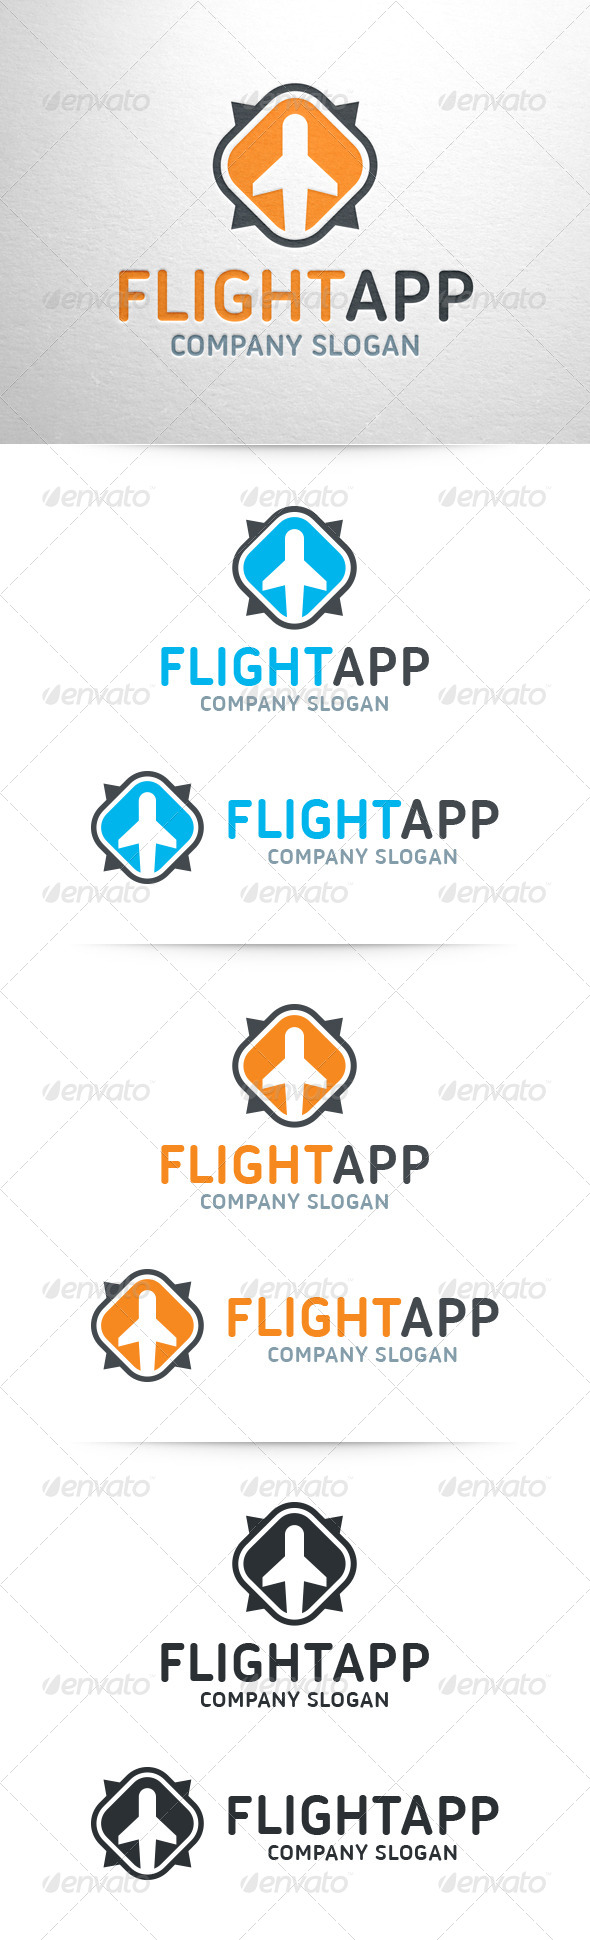 GraphicRiver Flight App Logo Template 6997914